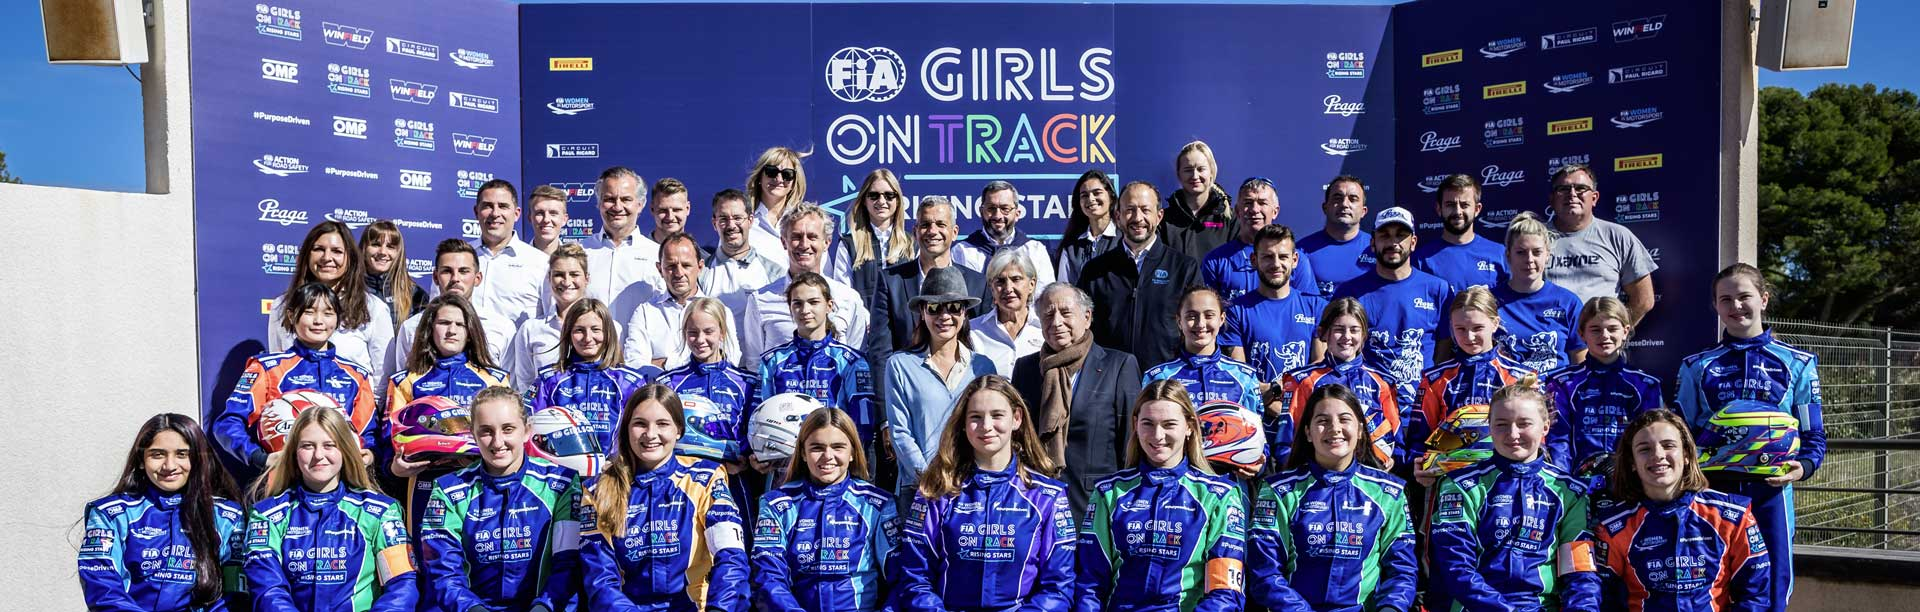 Praga | FIA Girls on Track - Rising Stars kicks off together with Praga Kart